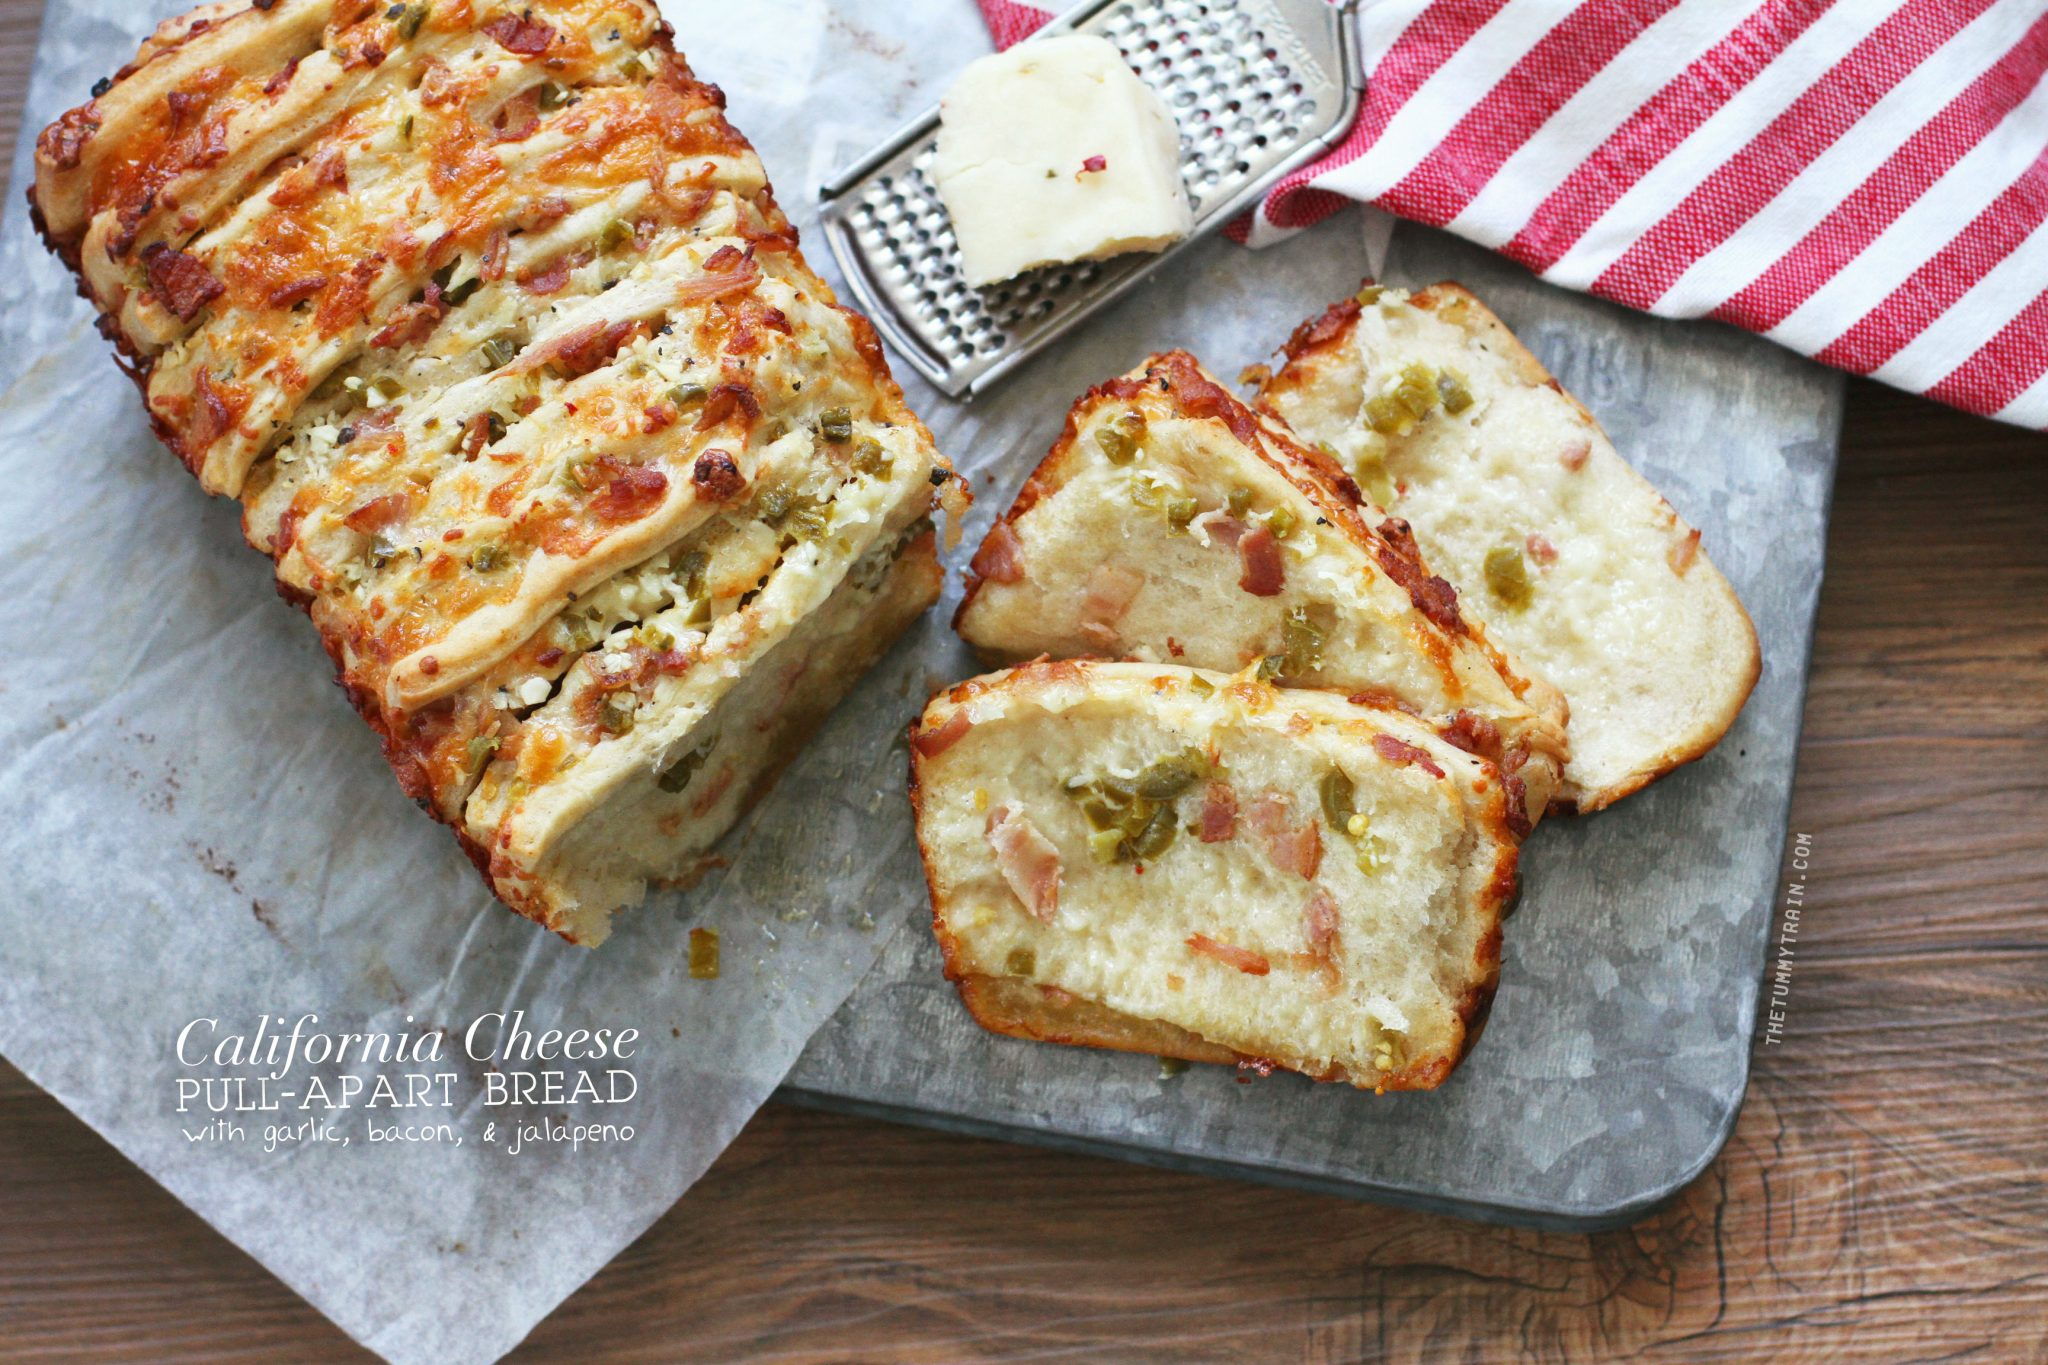 Calif Cheese 1 - #ReturnToReal California Cheese with this Cheesy Garlic, Bacon, & Jalapeño Pull-Apart Bread